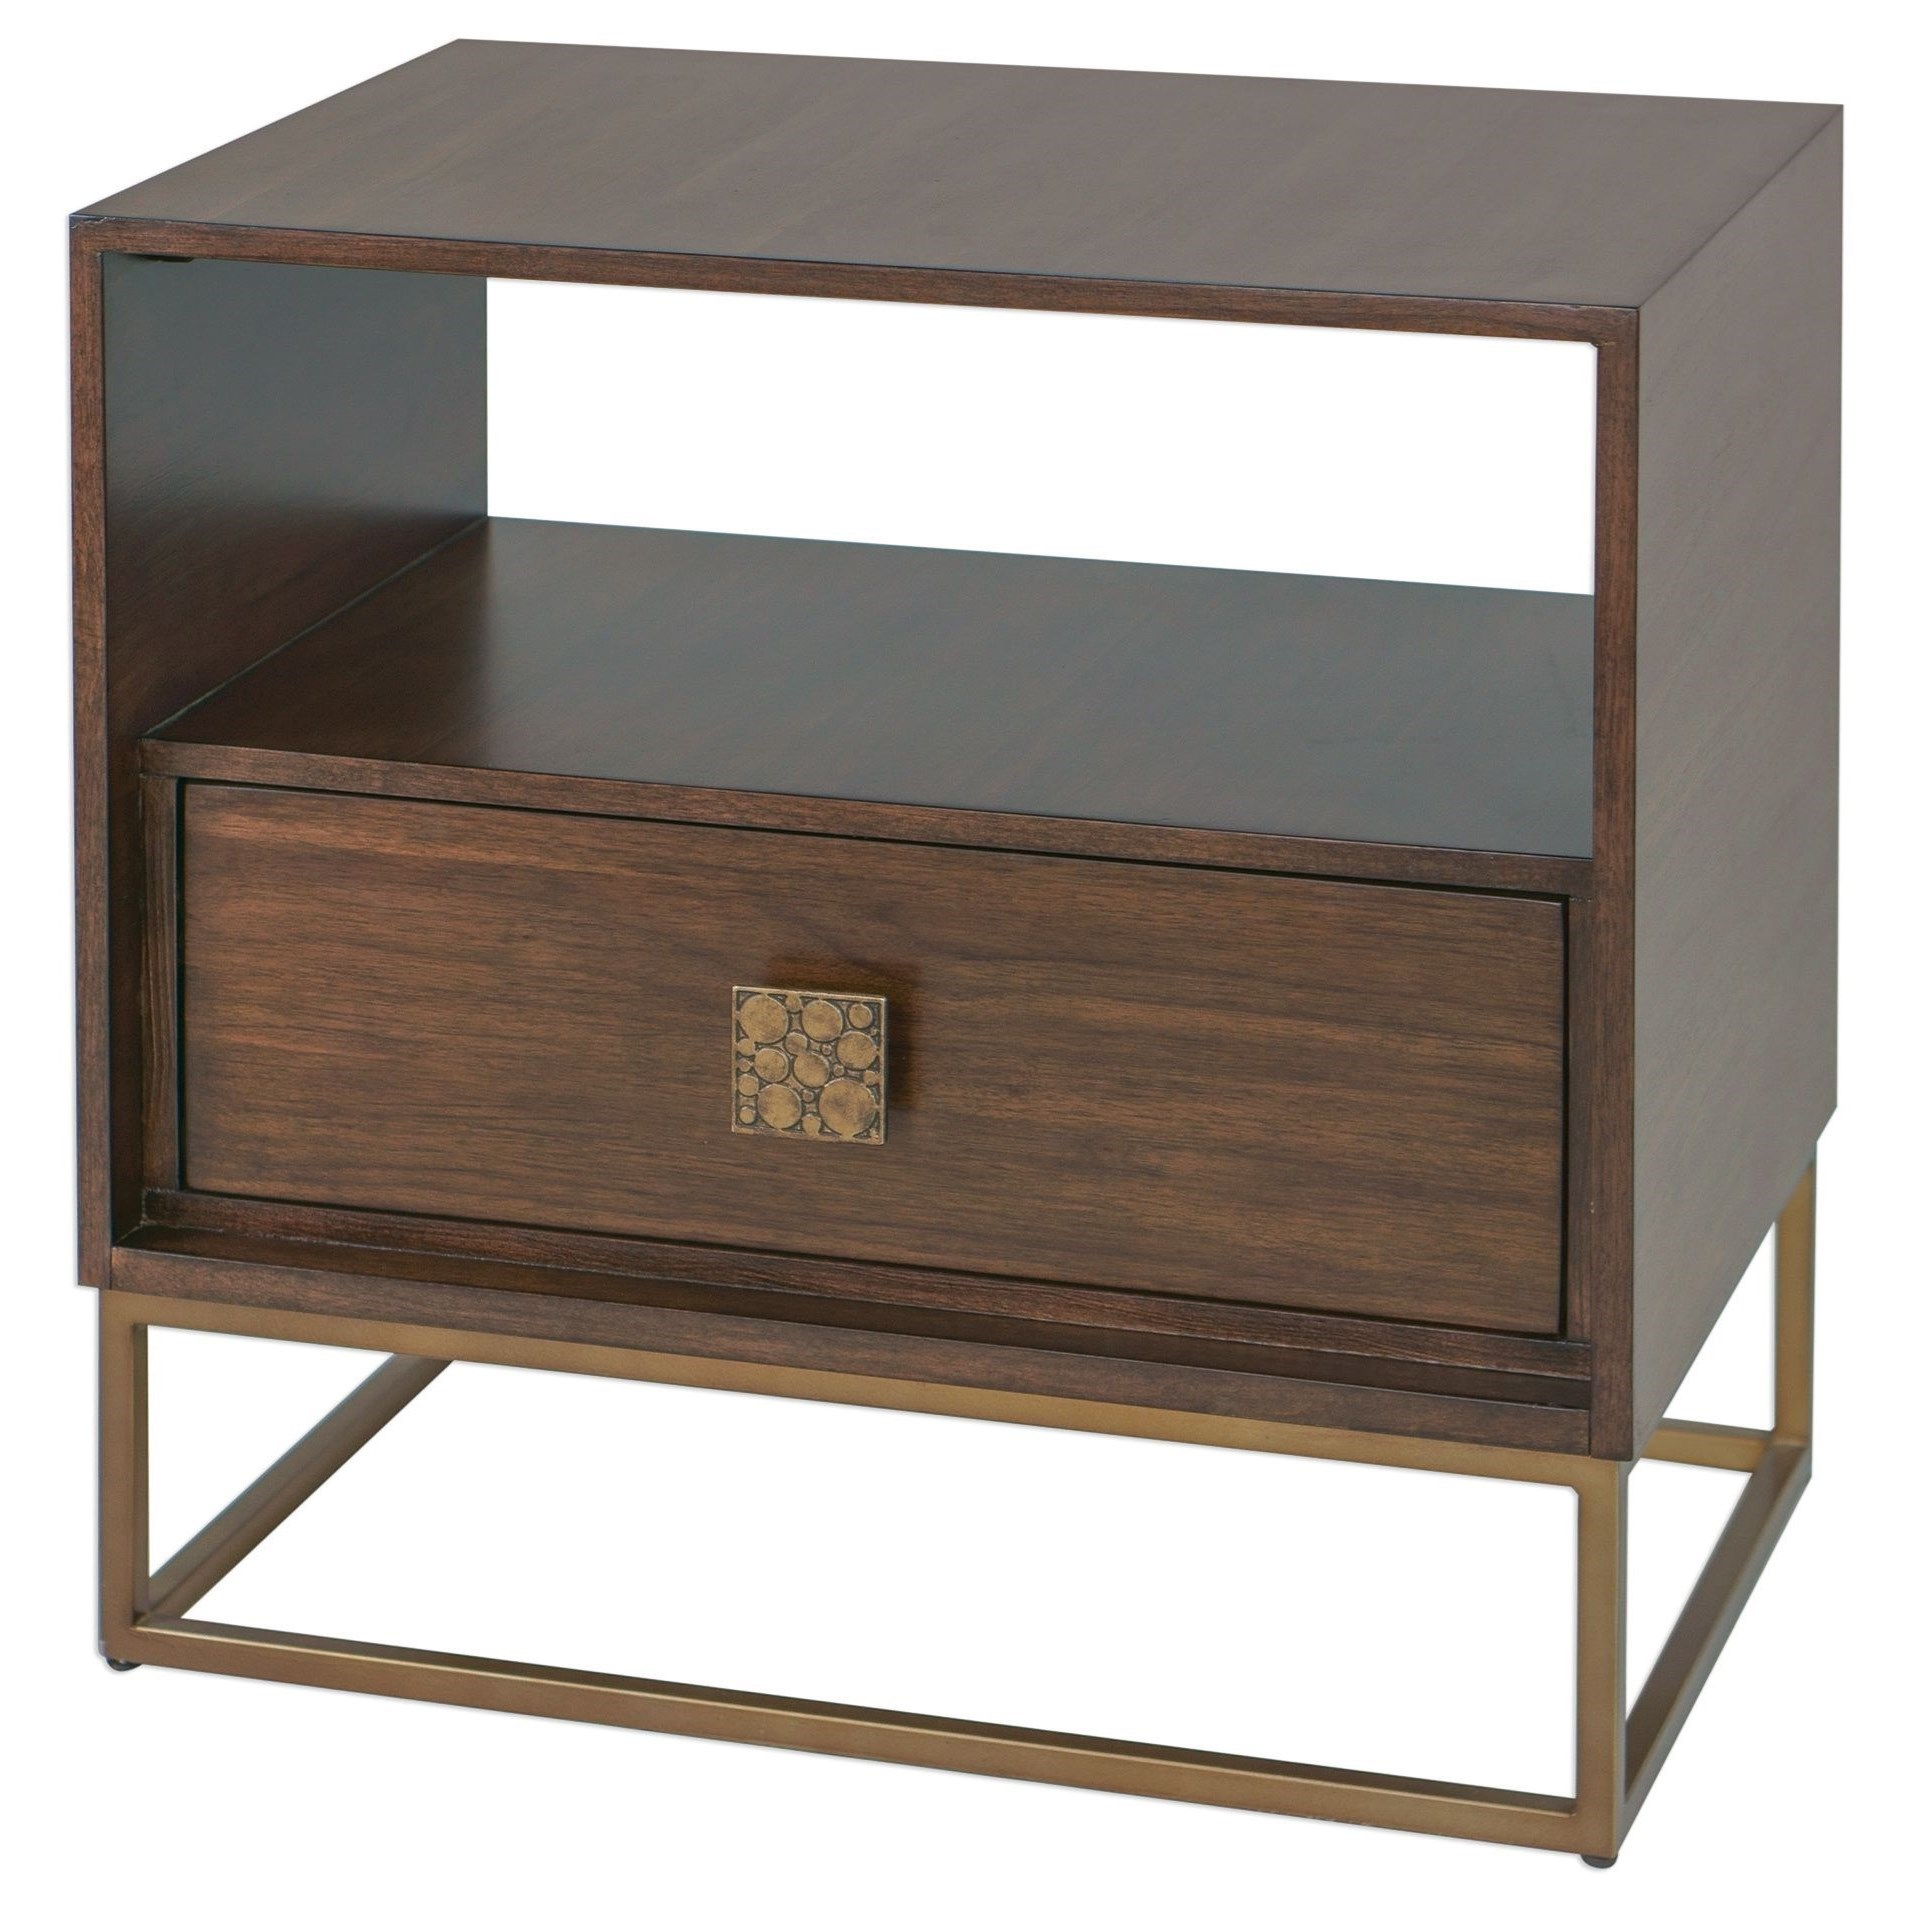 Accent Furniture - Occasional Tables Bexley Walnut Side Table by Uttermost at Goffena Furniture & Mattress Center